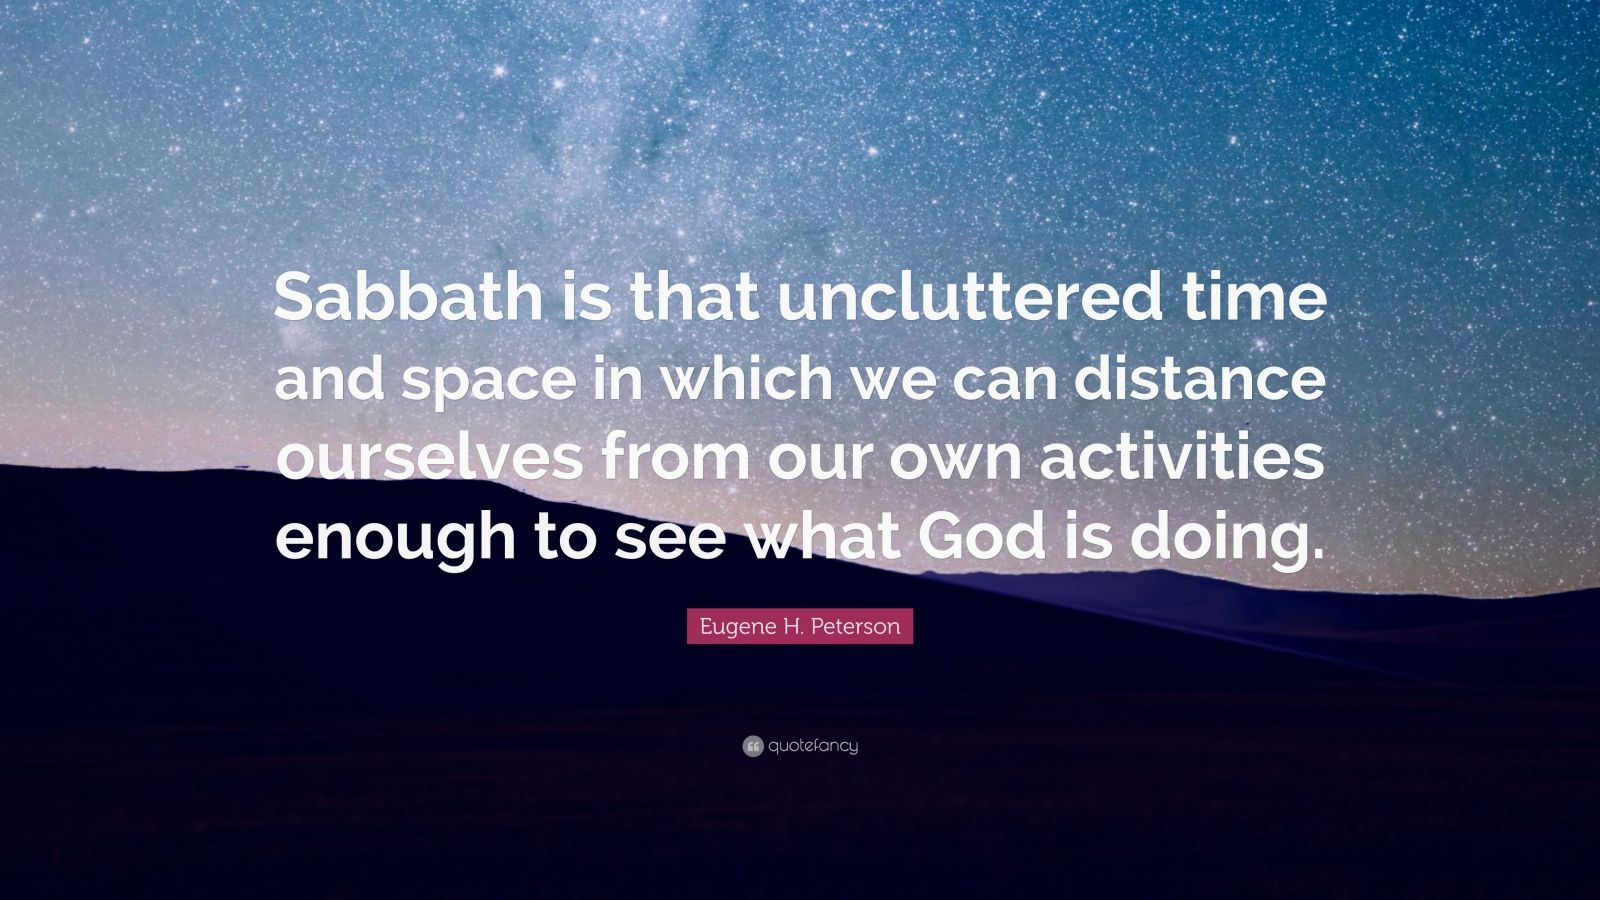 """Eugene H. Peterson Quote: """"Sabbath is that uncluttered time and space in which we can distance ourselves from our own activities enough to see what God is doing."""""""